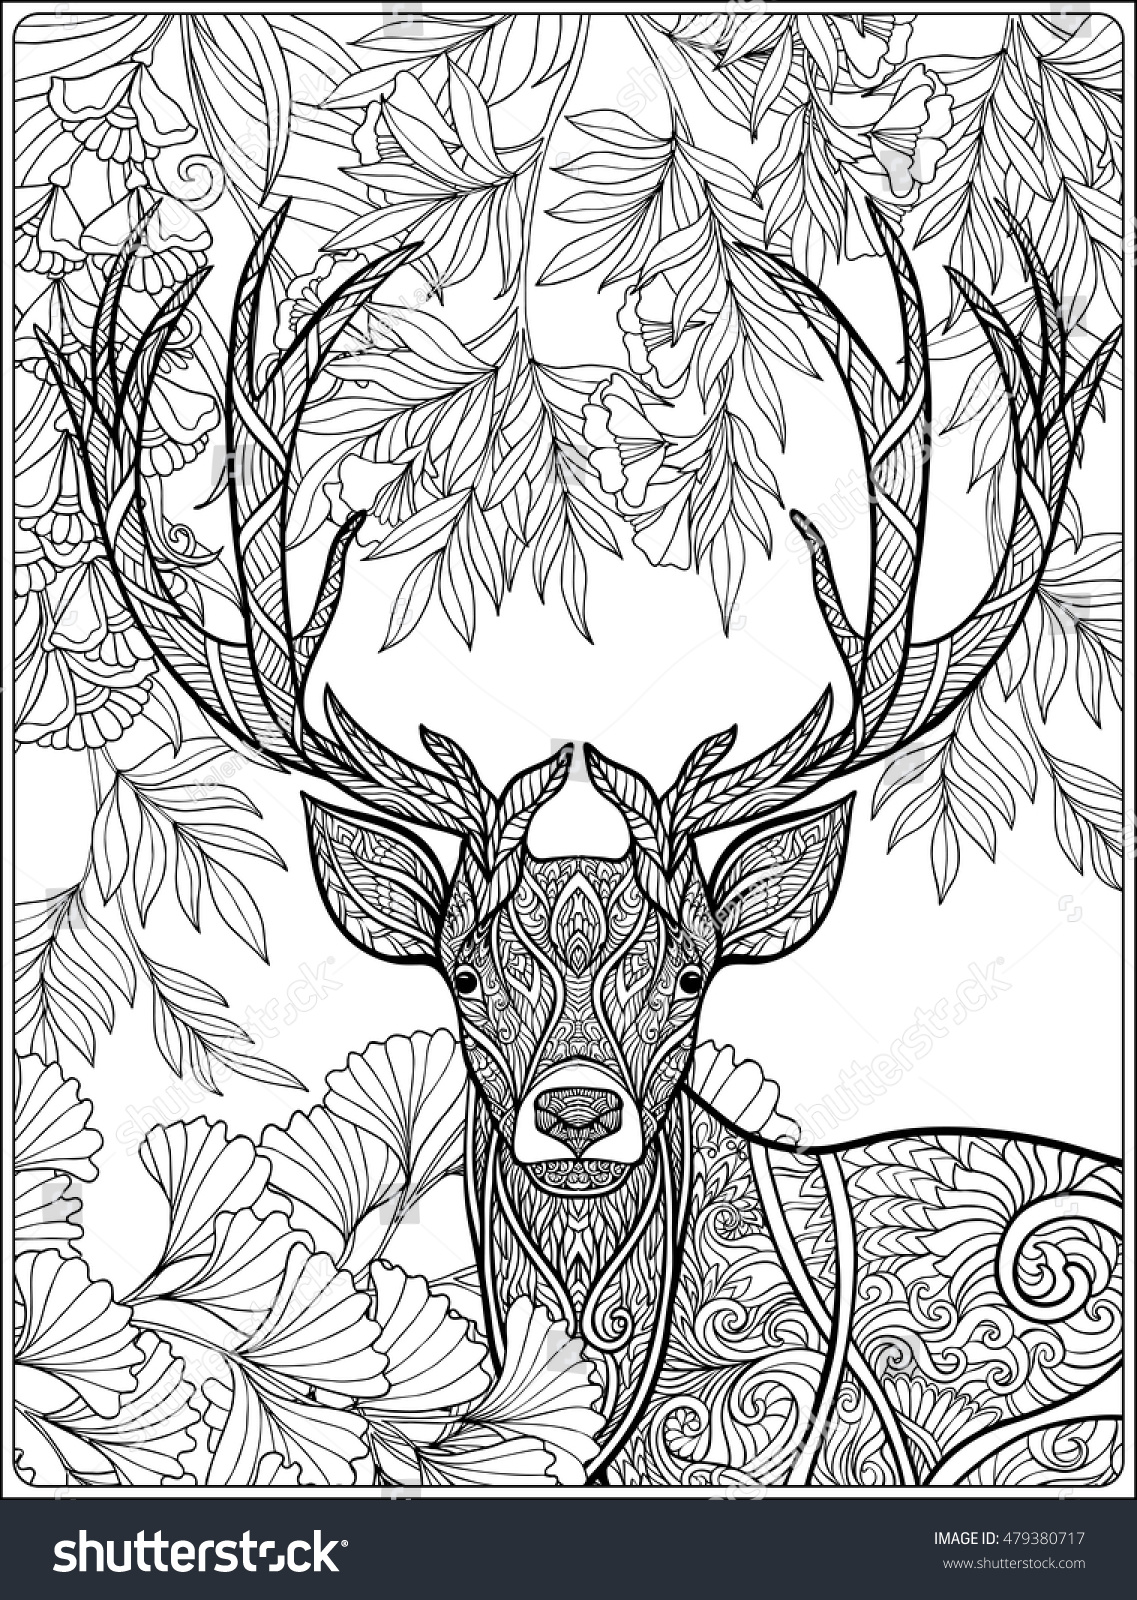 coloring page deer forest coloring book stock vector 479380717